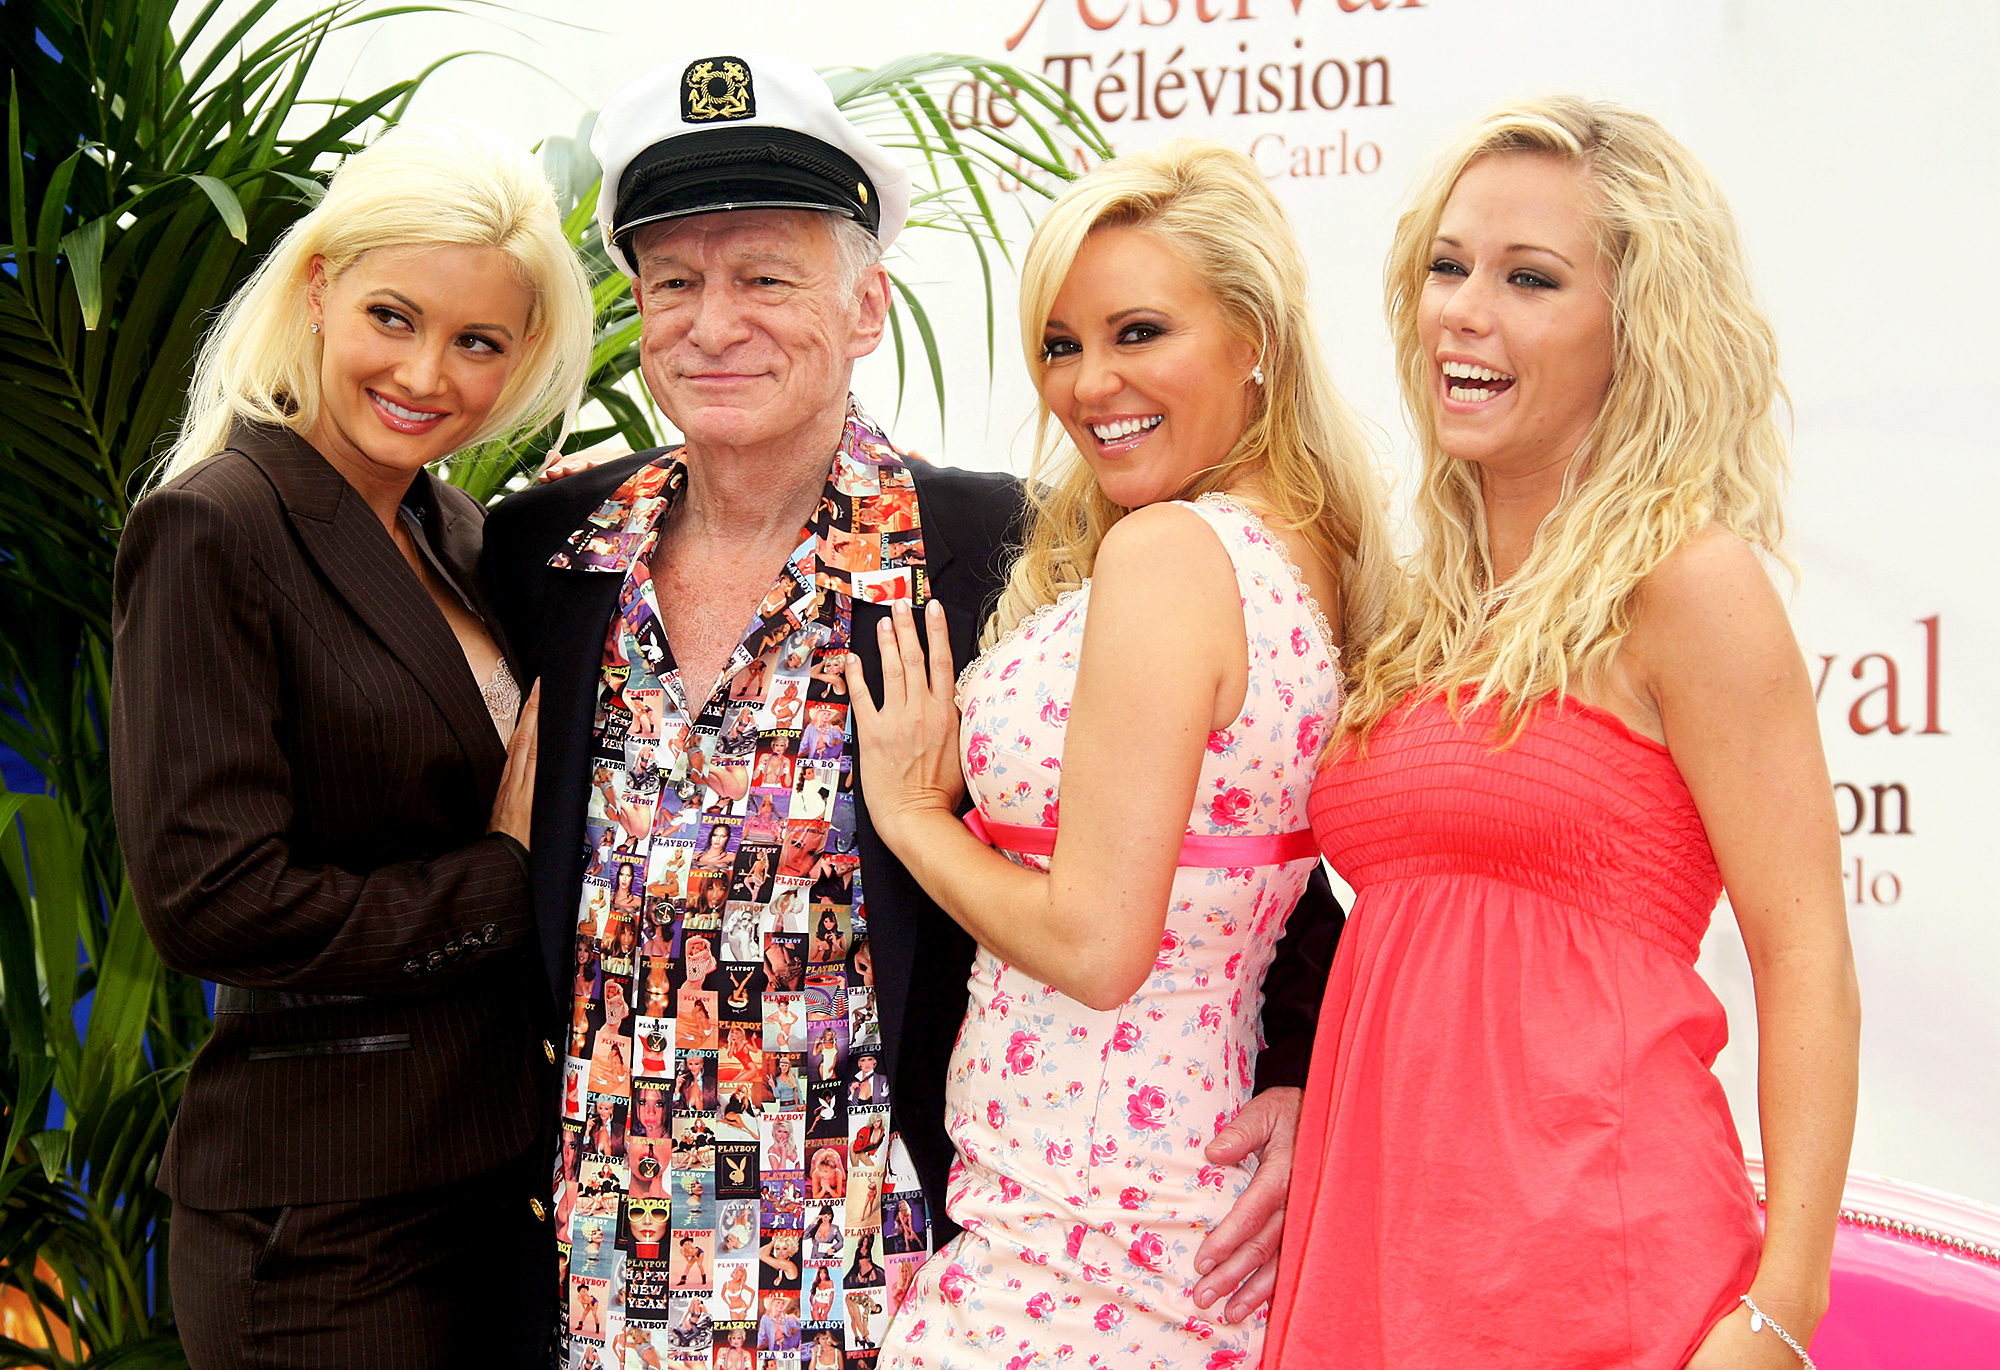 Holly Madison, Hugh Hefner, Bridget Marquardt and Kendra Wilkinson